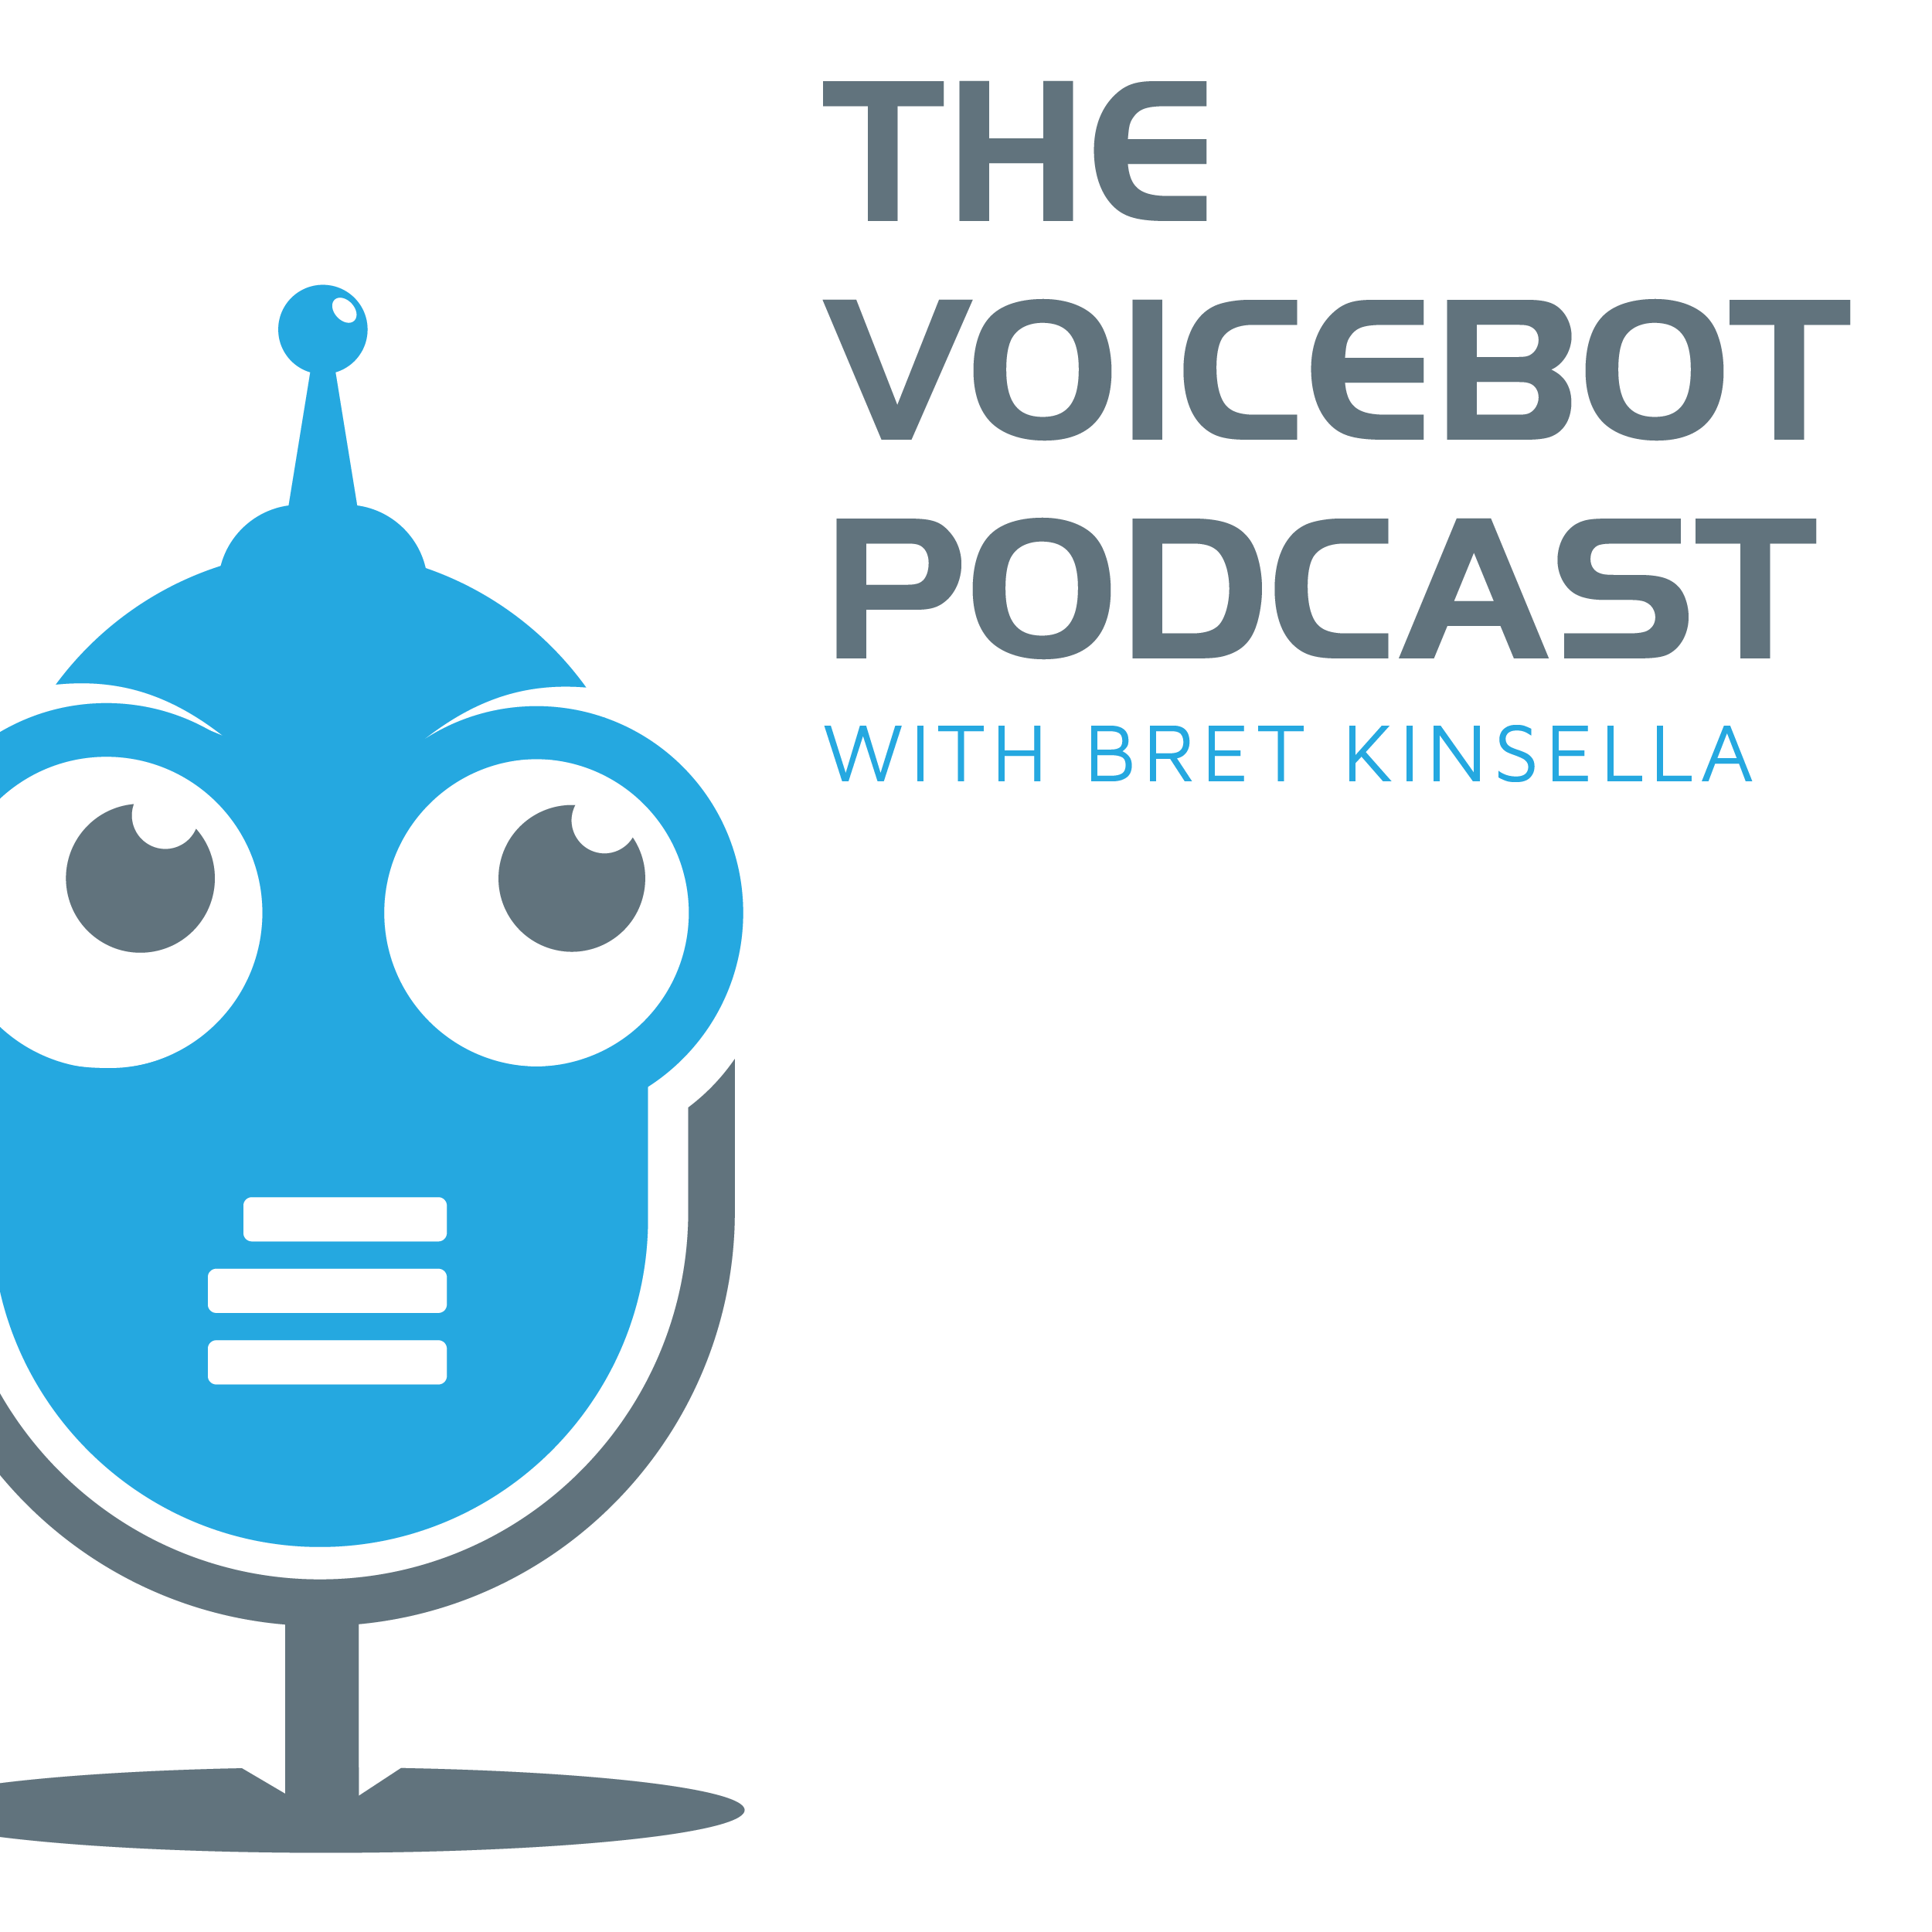 Bahubali Shete CEO of TinyChef on His Journey to 1M Voice App Users